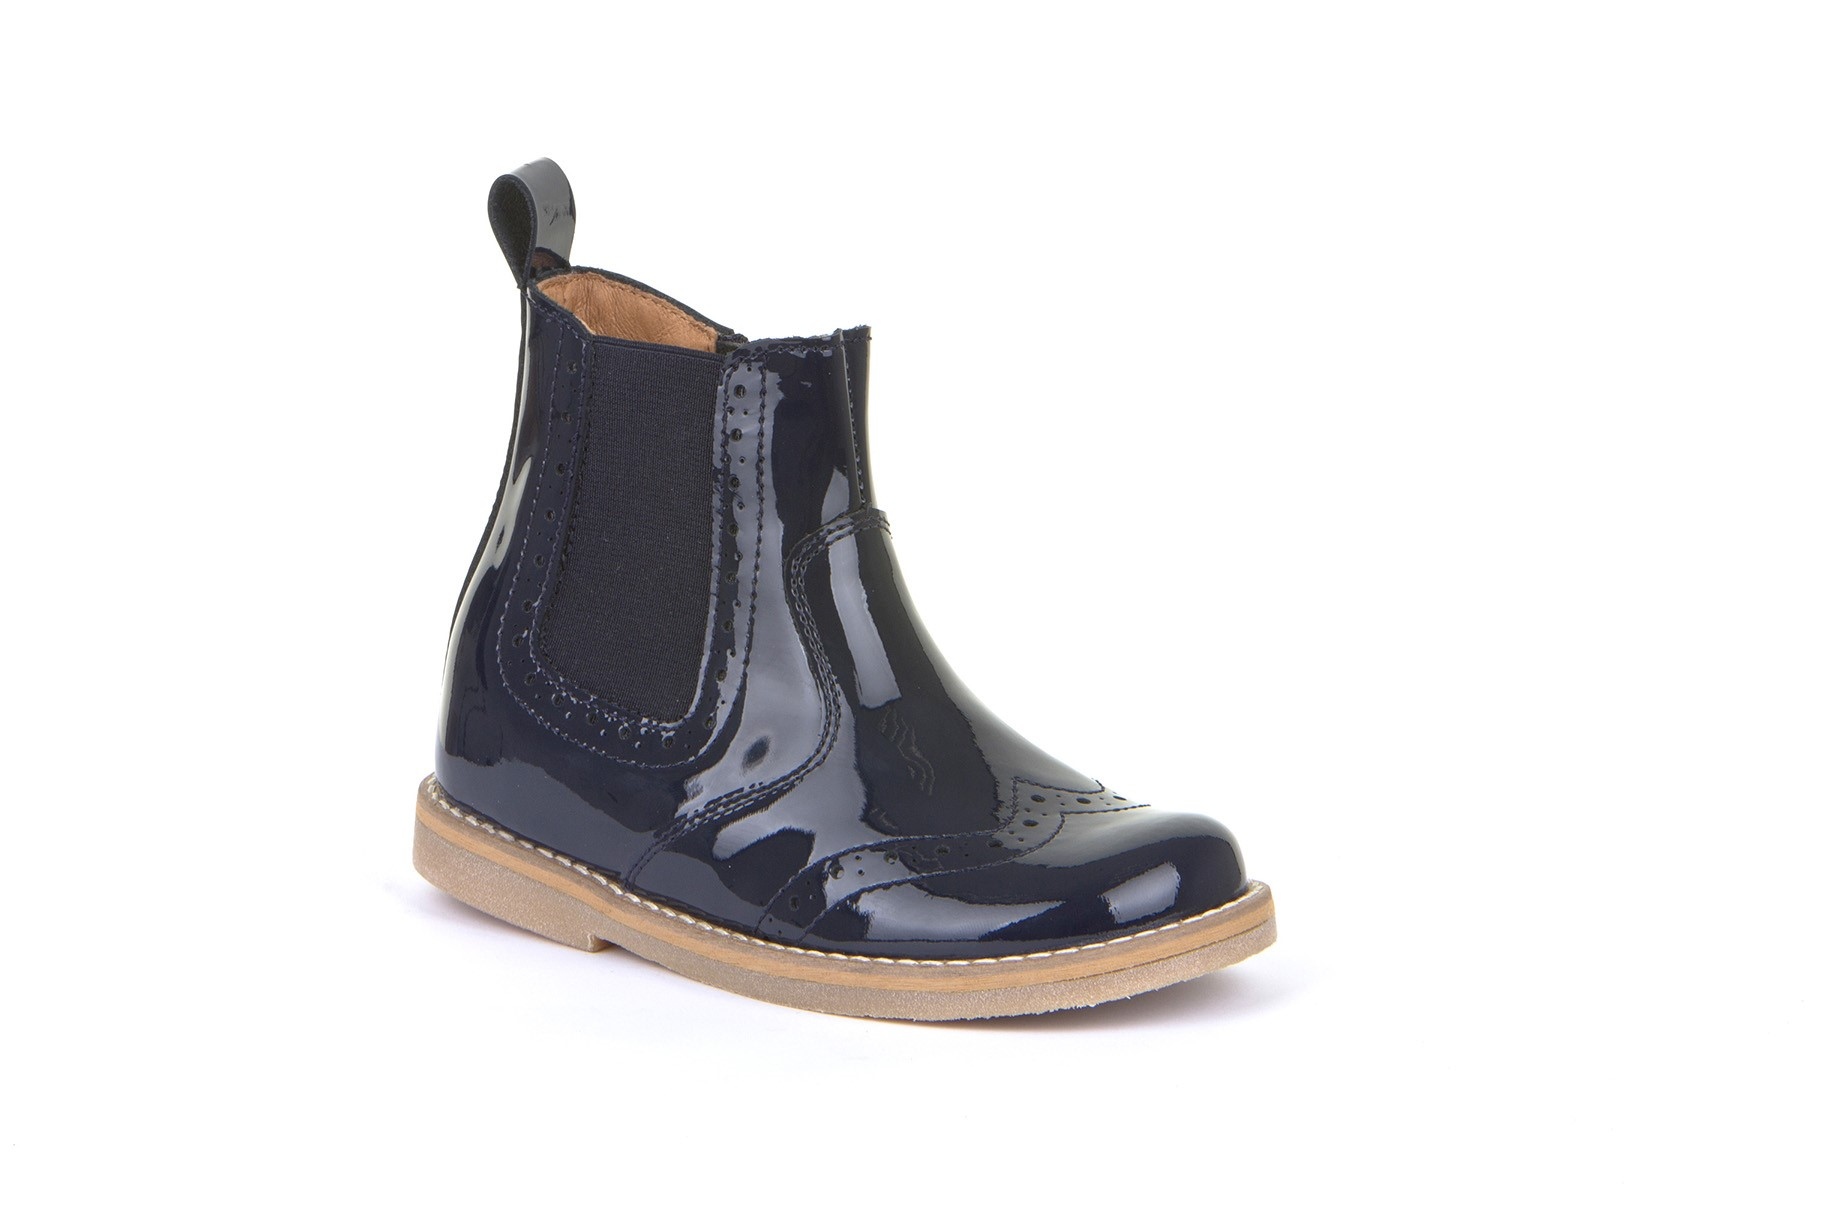 FRODDO Girls Chelsea Boots Blue Patent  G3160119-10 NOW £39.95